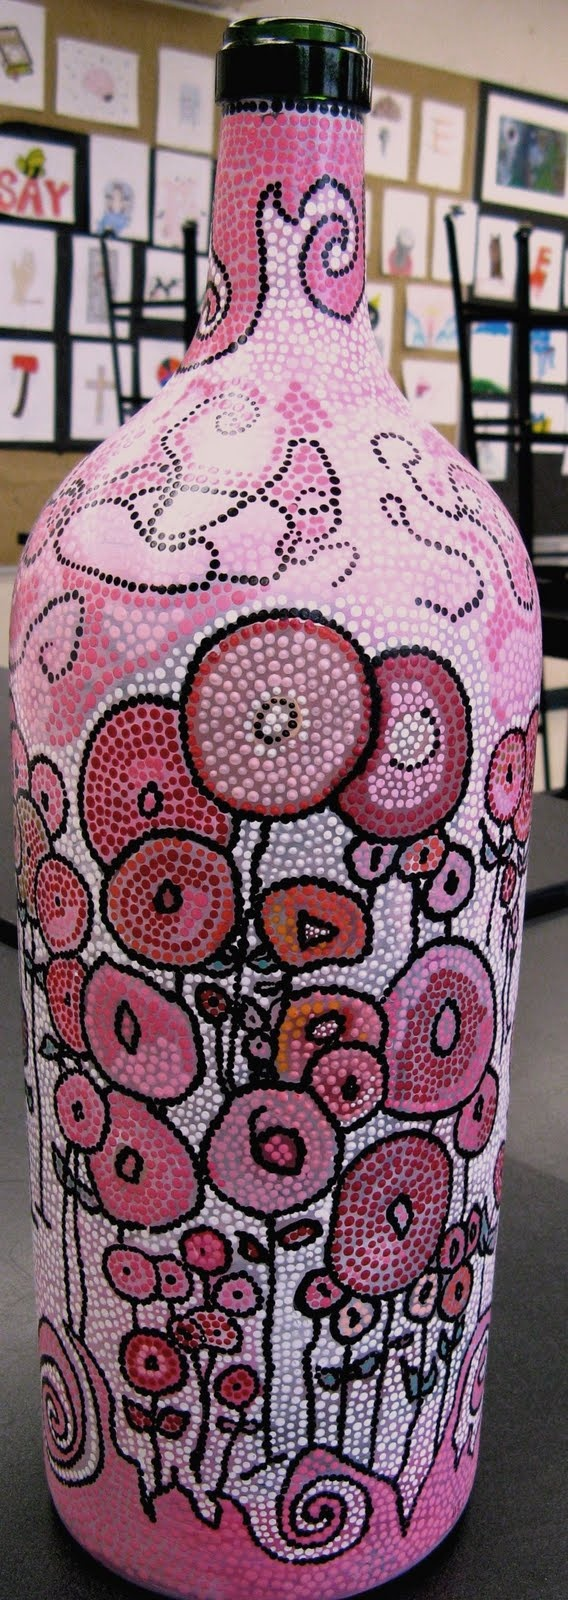 Yvonne Cavanagh: March 2010 Painted wine bottles